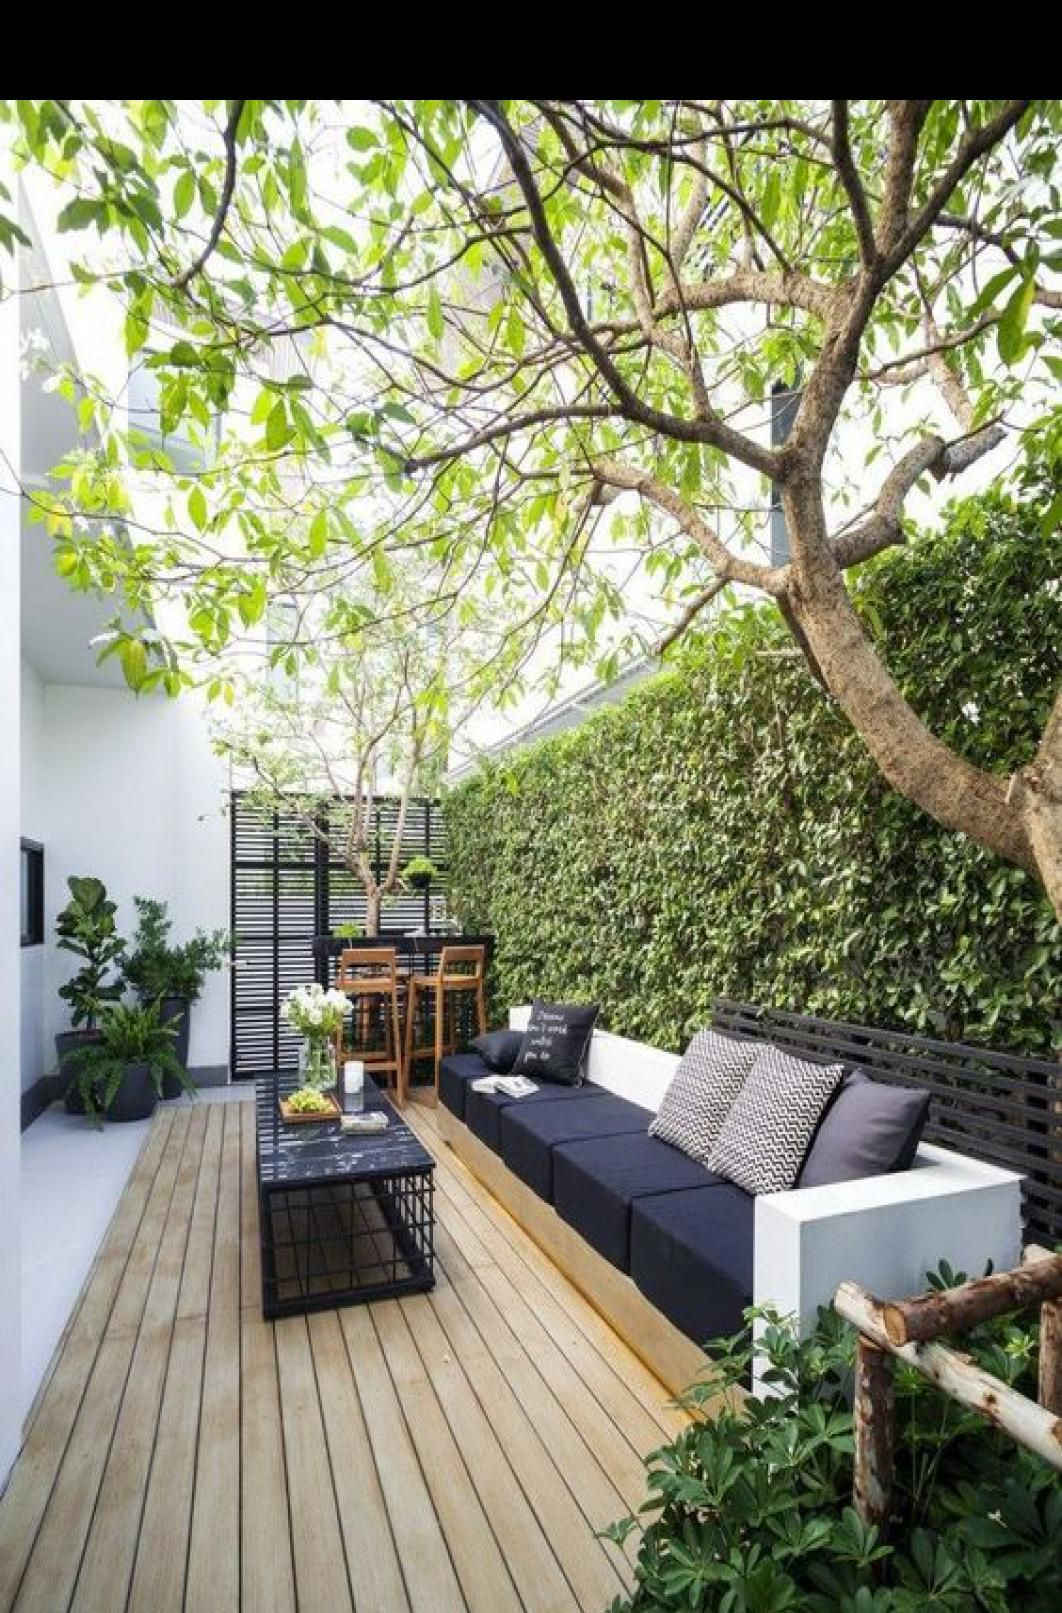 48 Comfy Outdoor Benches Ideas With L Shaped Design in ... on L Shaped Patio Ideas id=95236